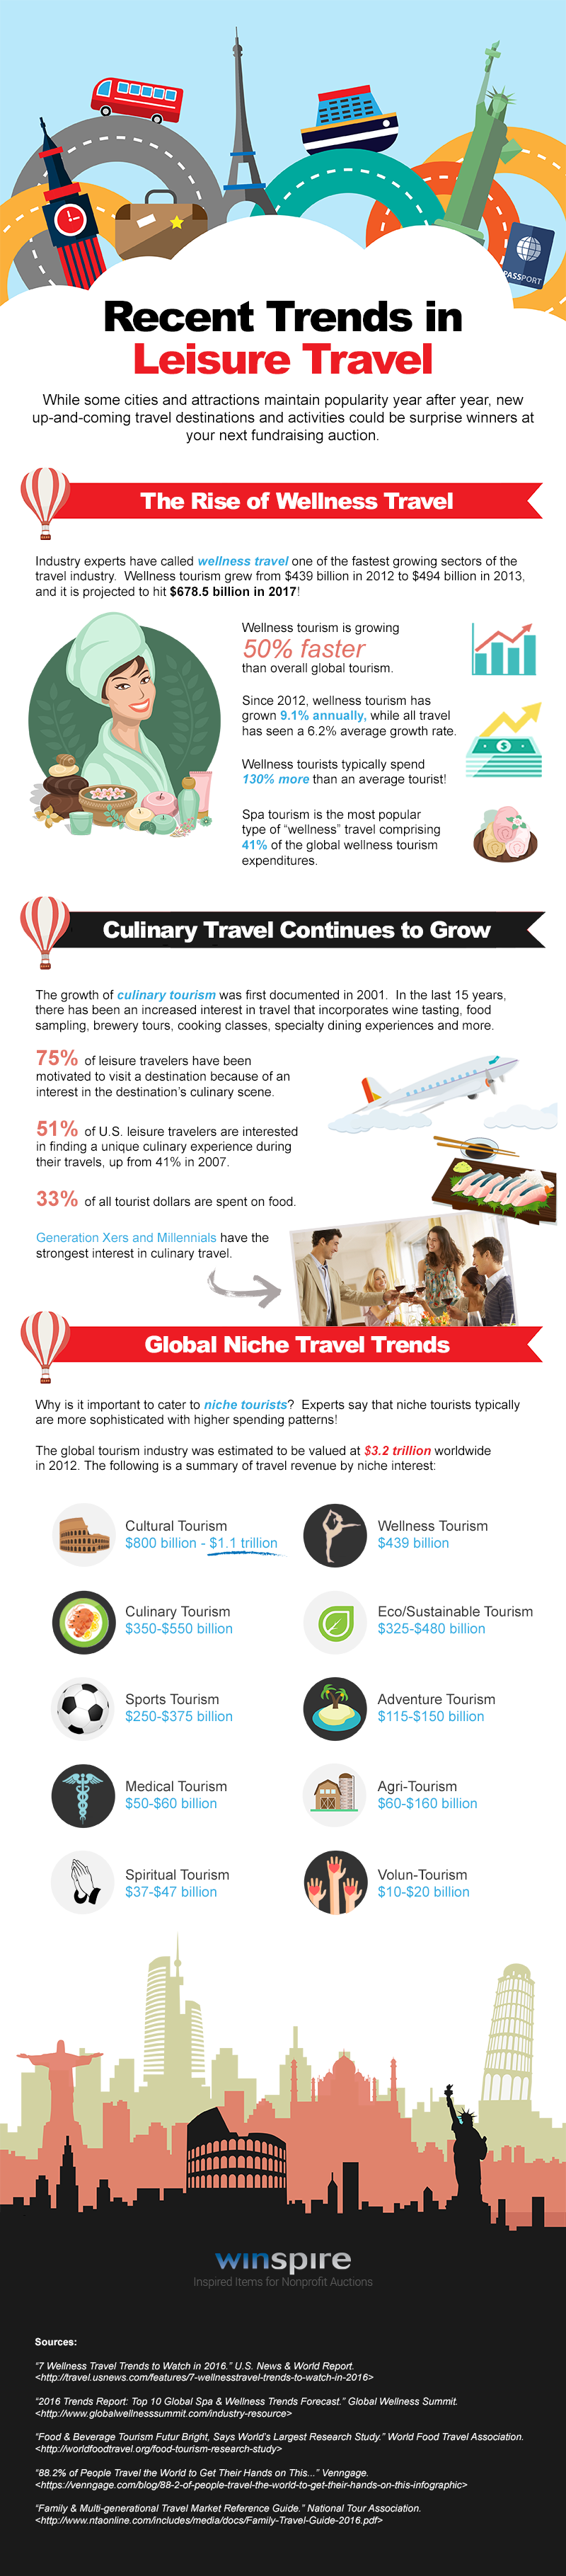 Travel-Trends-infographic.png